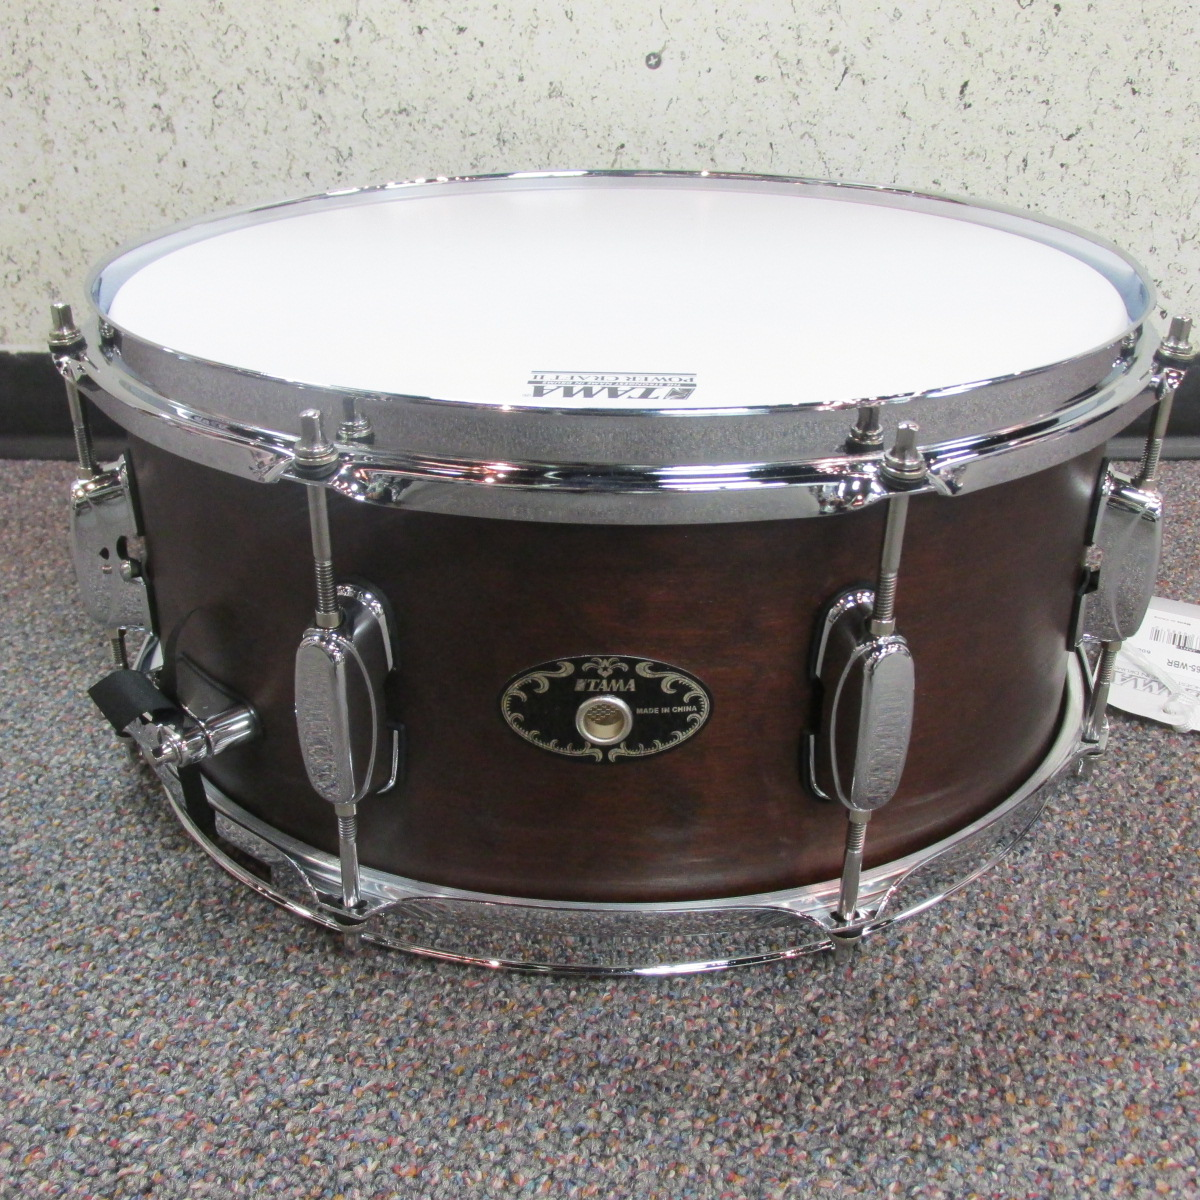 Tama - 6.5X14 Artwood Maple/Birch Snare